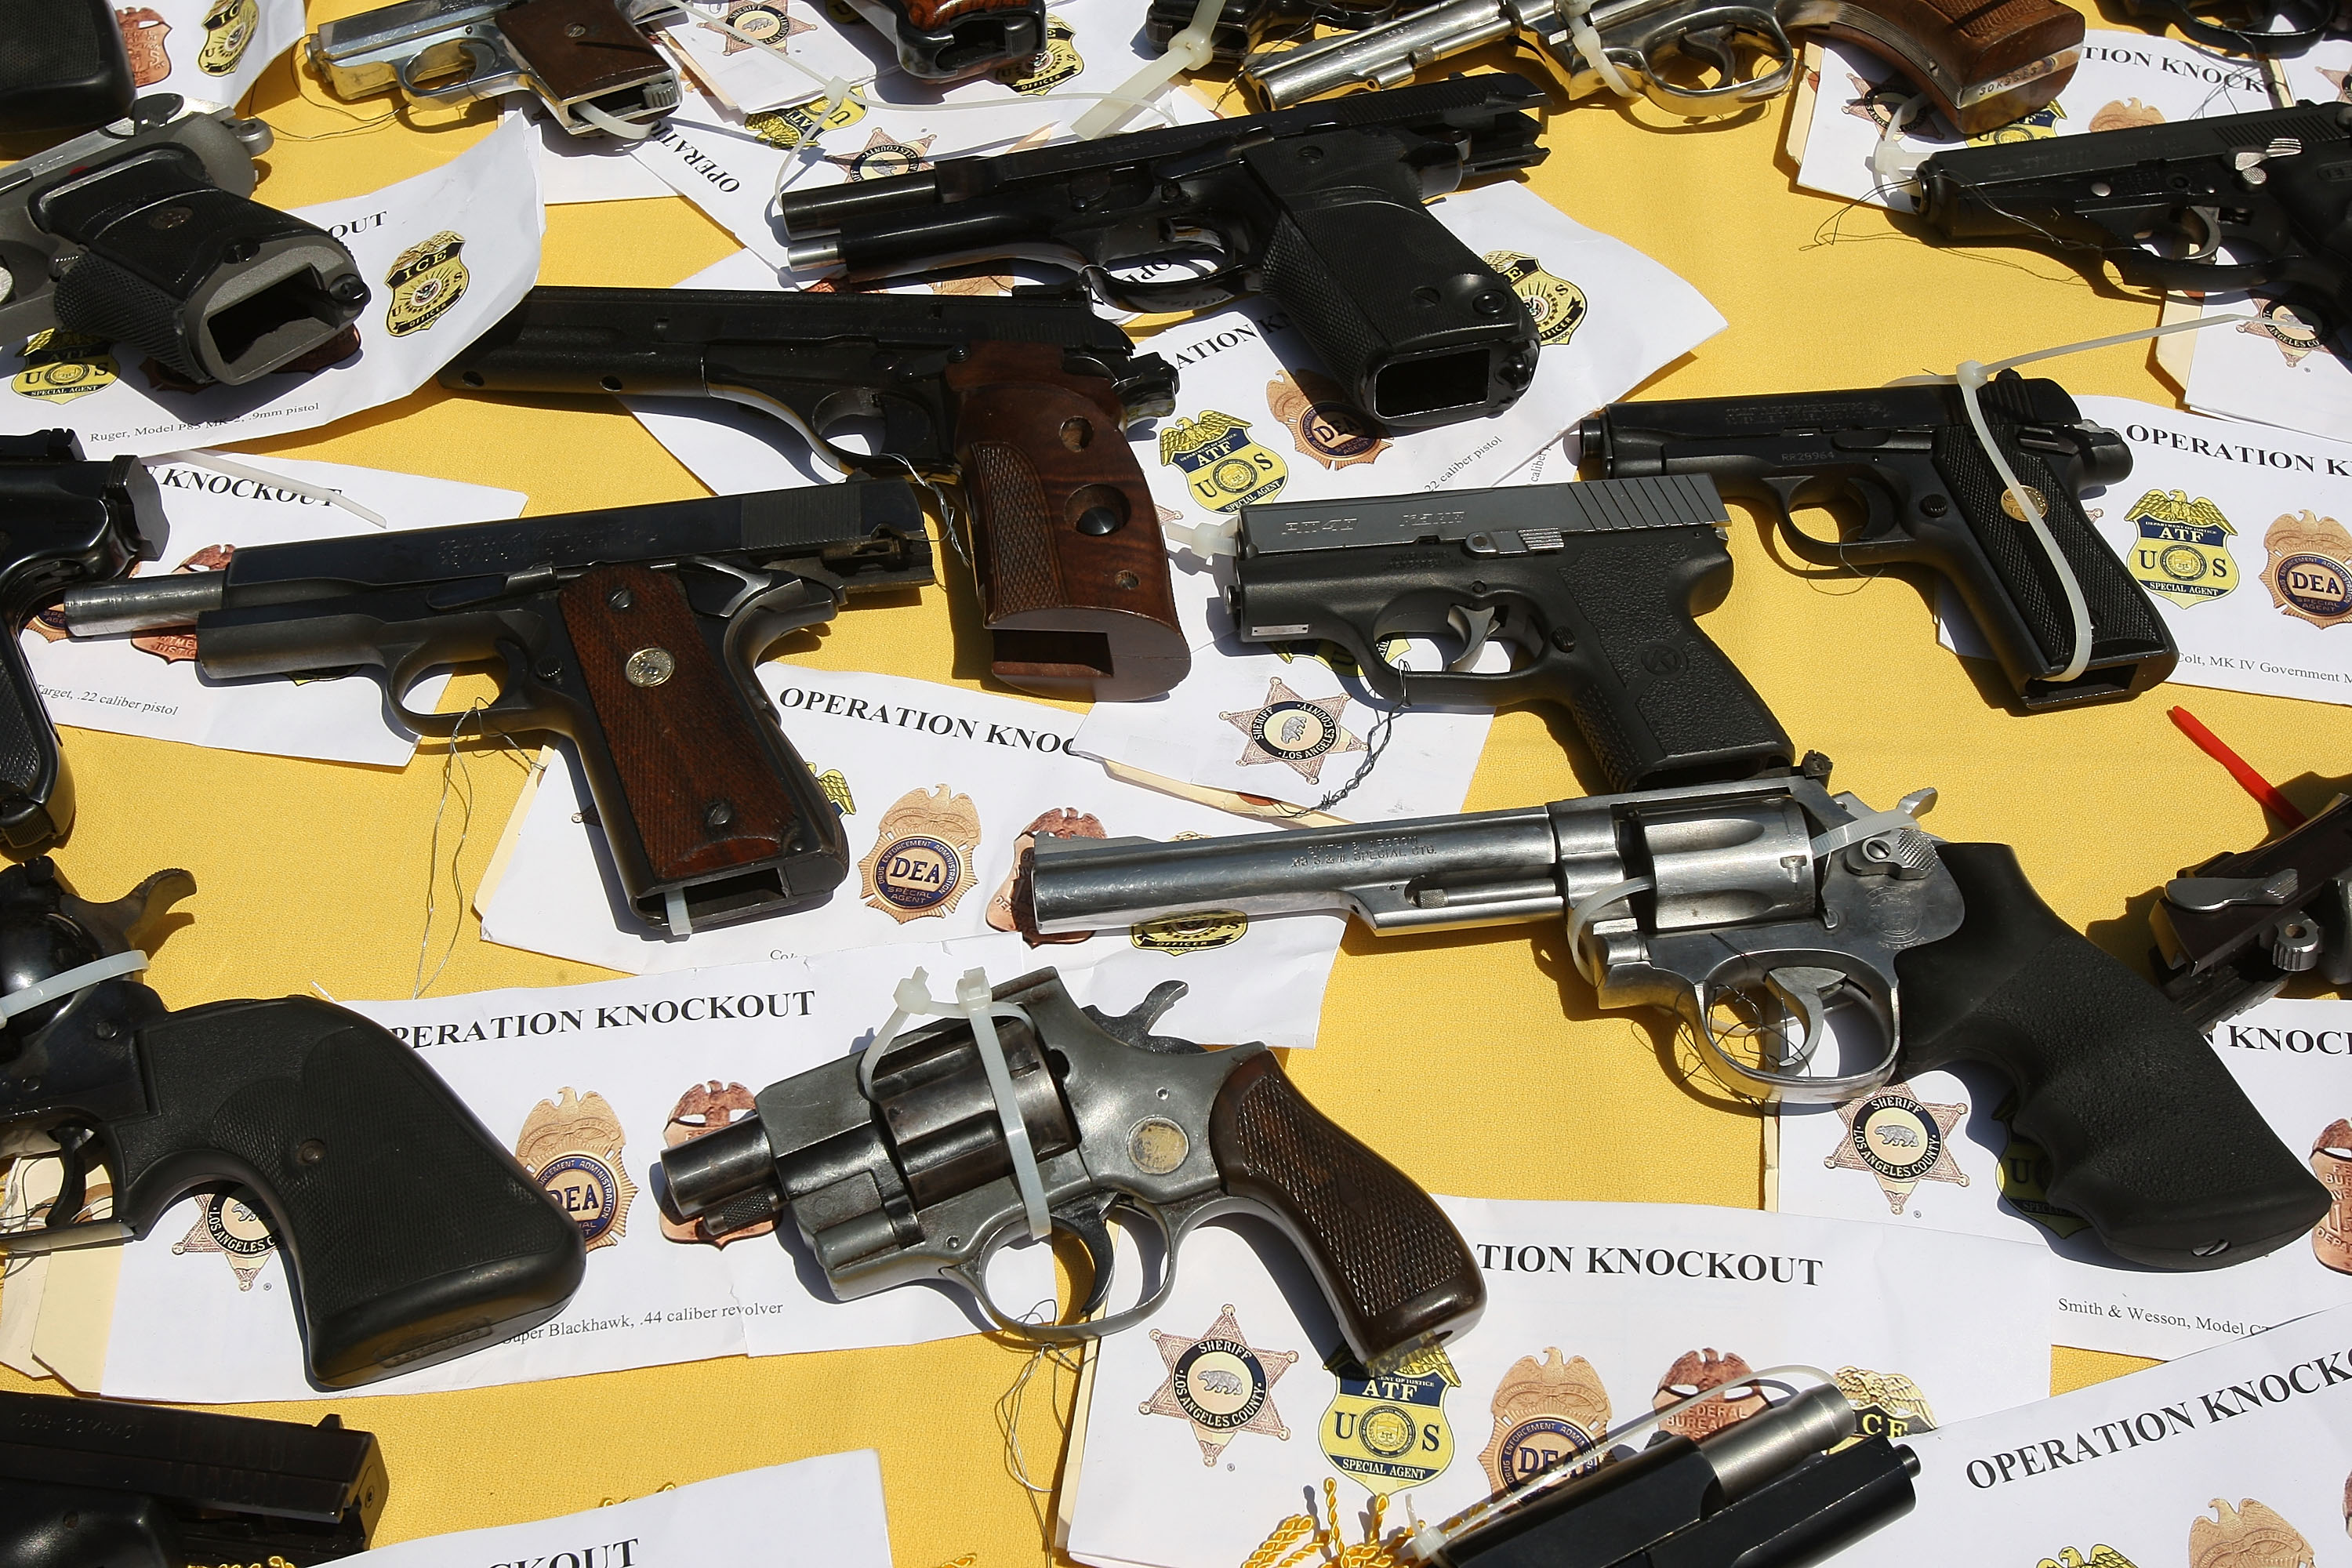 LAKEWOOD, CA - MAY 21: Some of about 125 weapons confiscated during what the federal authorities say is the largest gang takedown in United States history are displayed at a press conference to announce the arrests of scores of alleged gang members and associates on federal racketeering and drug-trafficking charges on May 21, 2009 in the Los Angeles-area community of Lakewood, California. (Photo by David McNew/Getty Images)